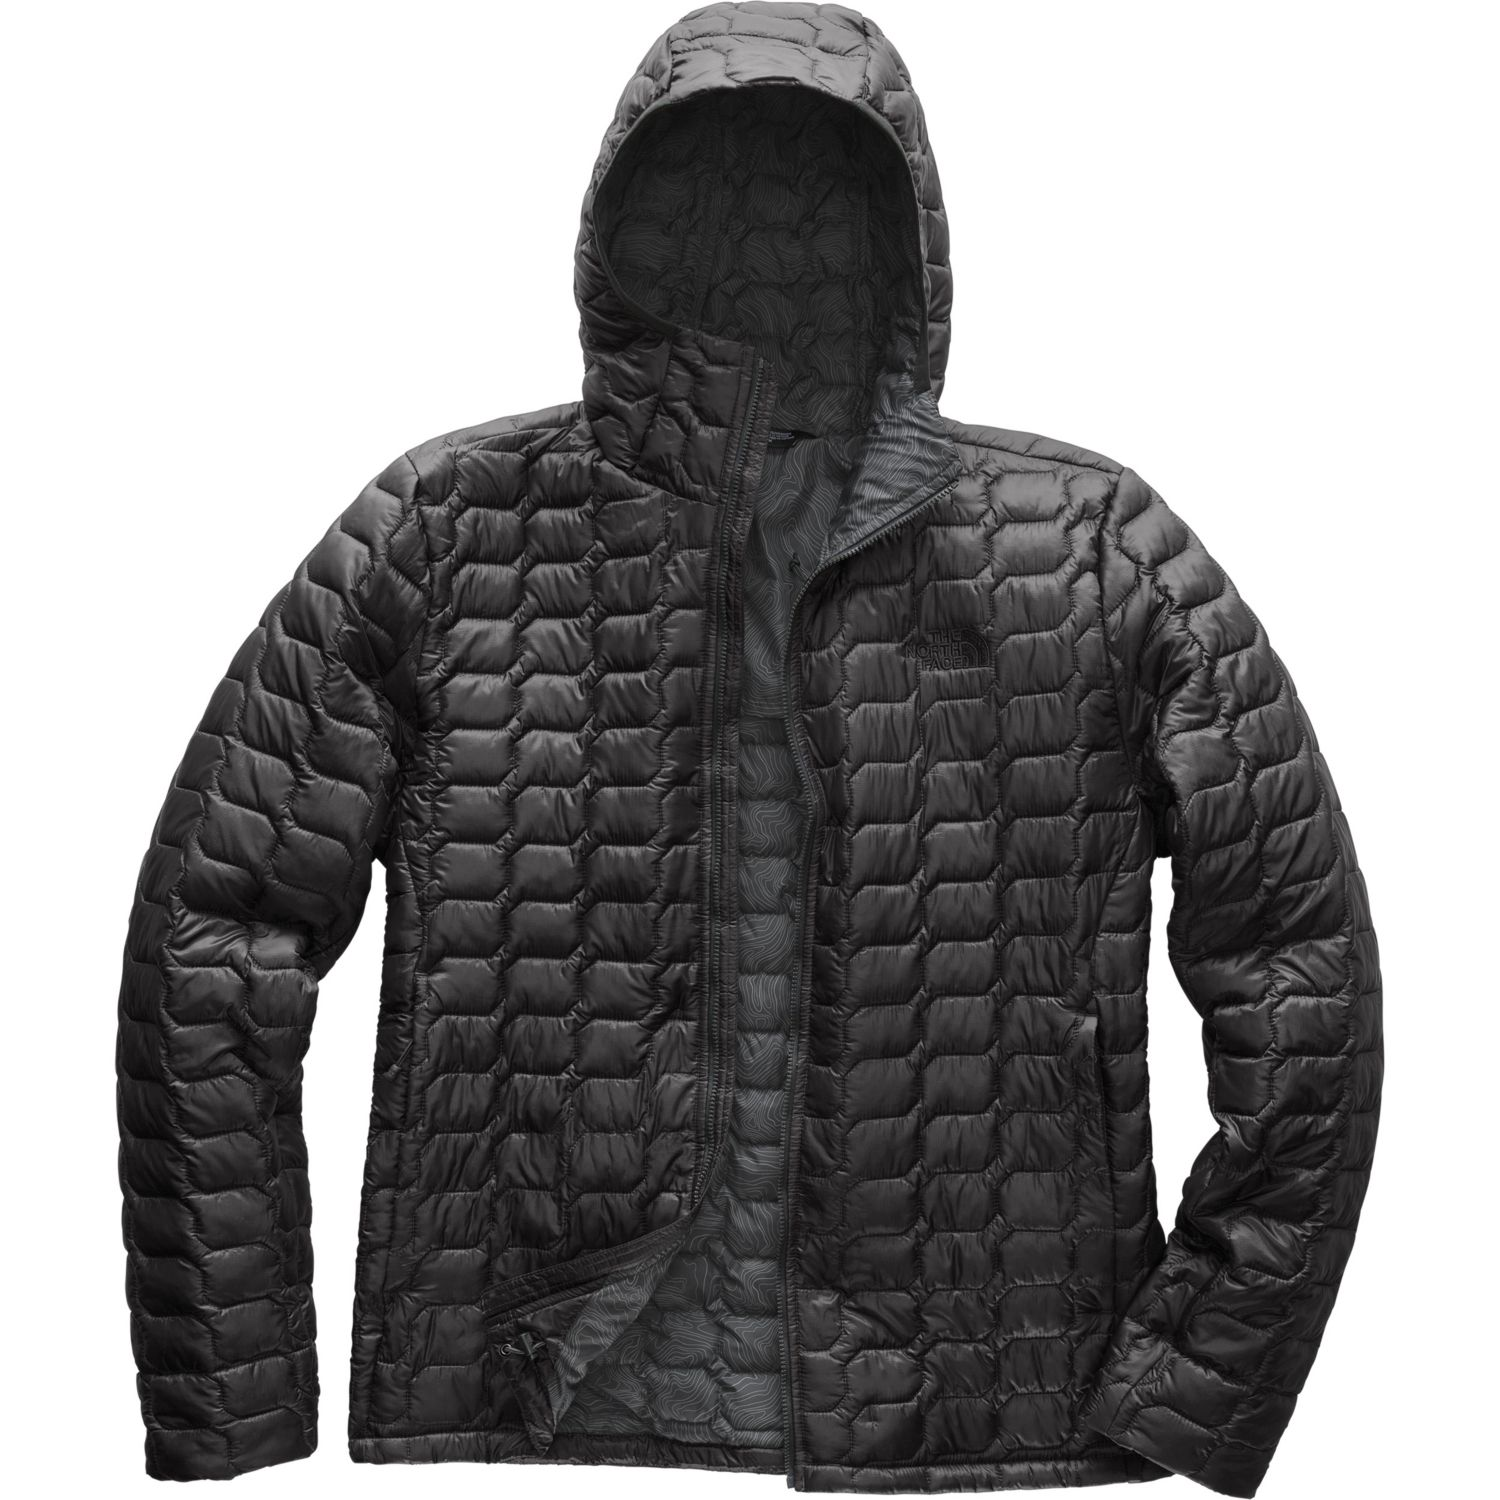 75c44983da86f The North Face ThermoBall Hoodie - Men's